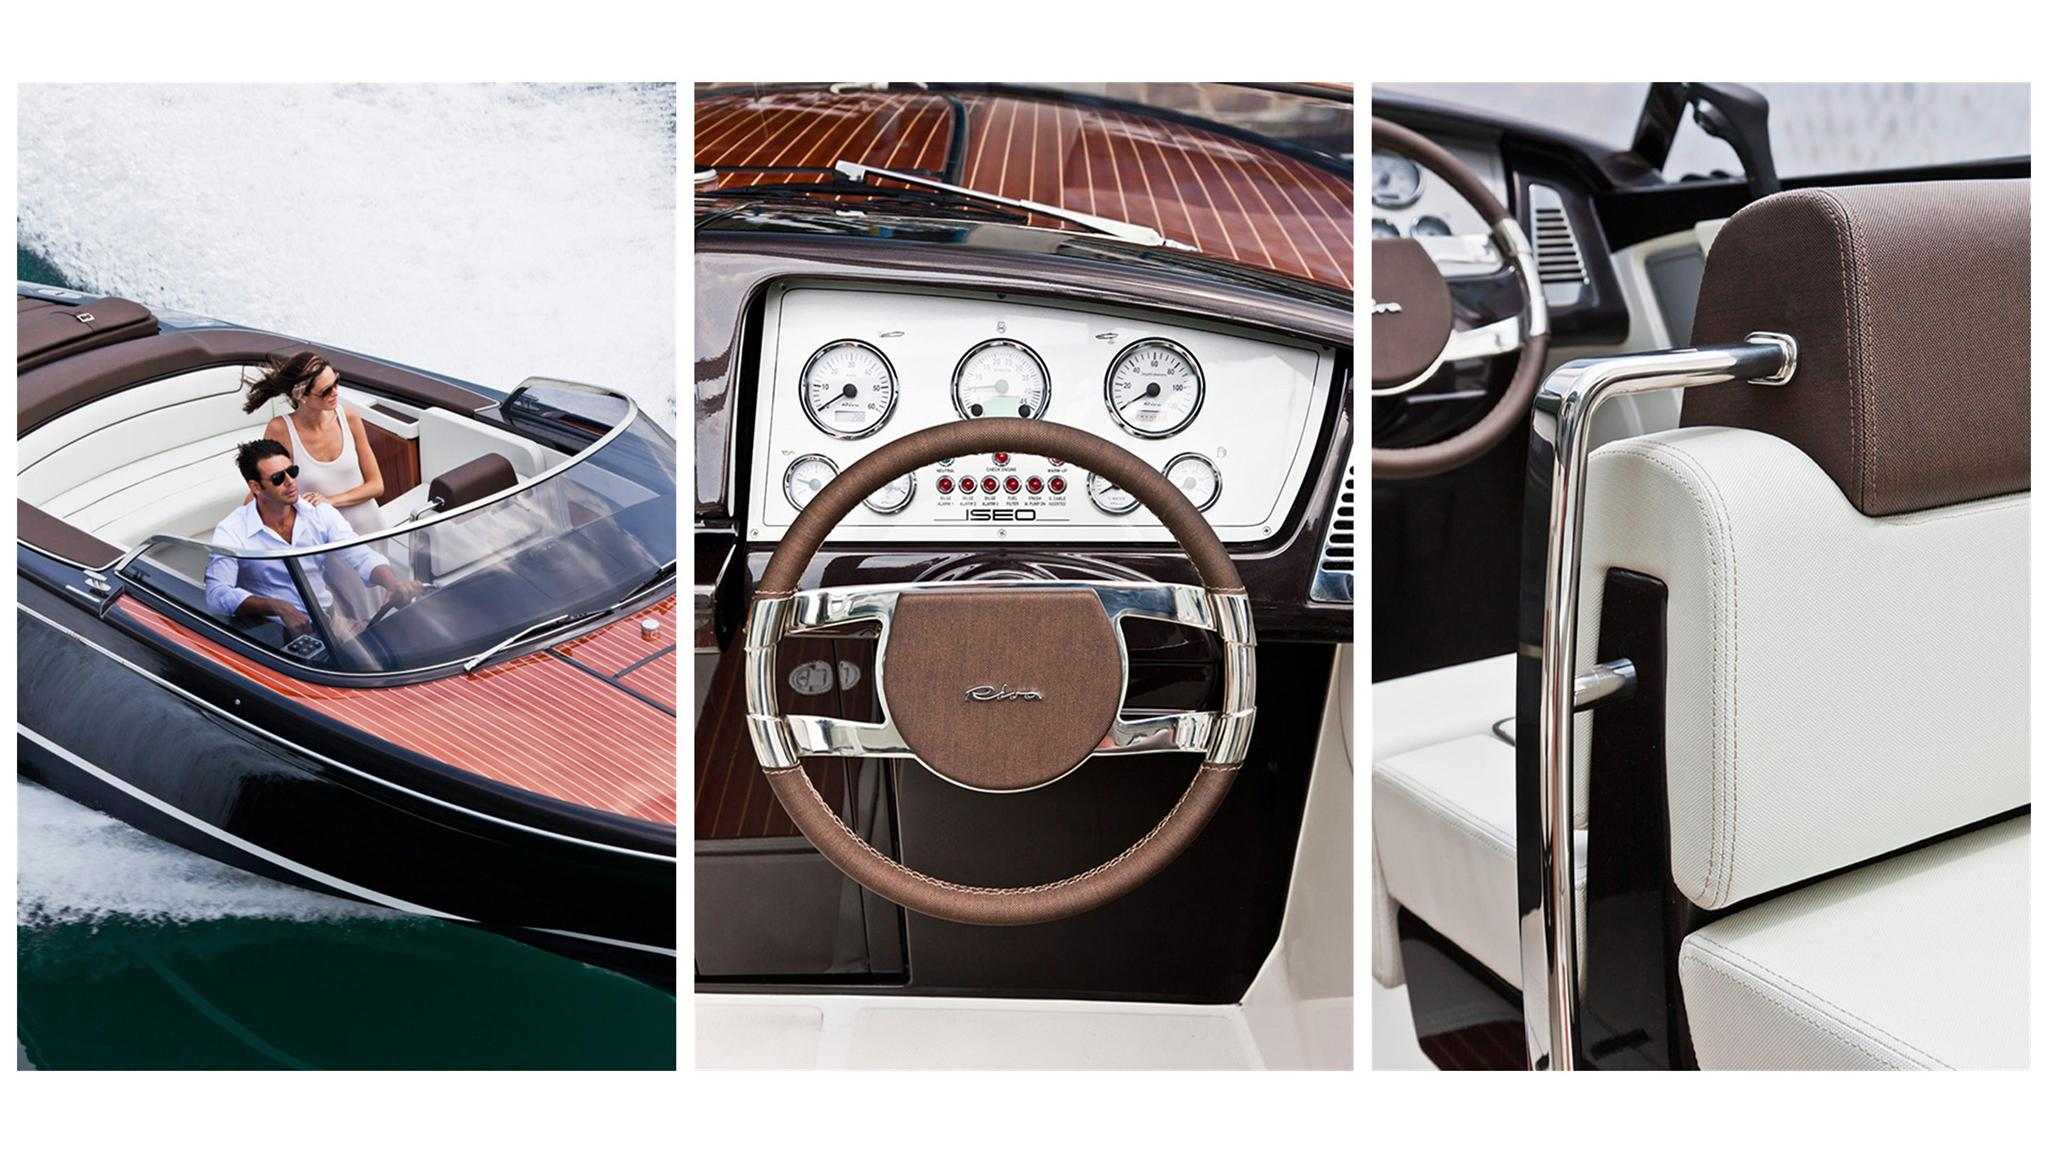 RIVA 27 ISEO Chris Coughlin Yacht Sales Executive